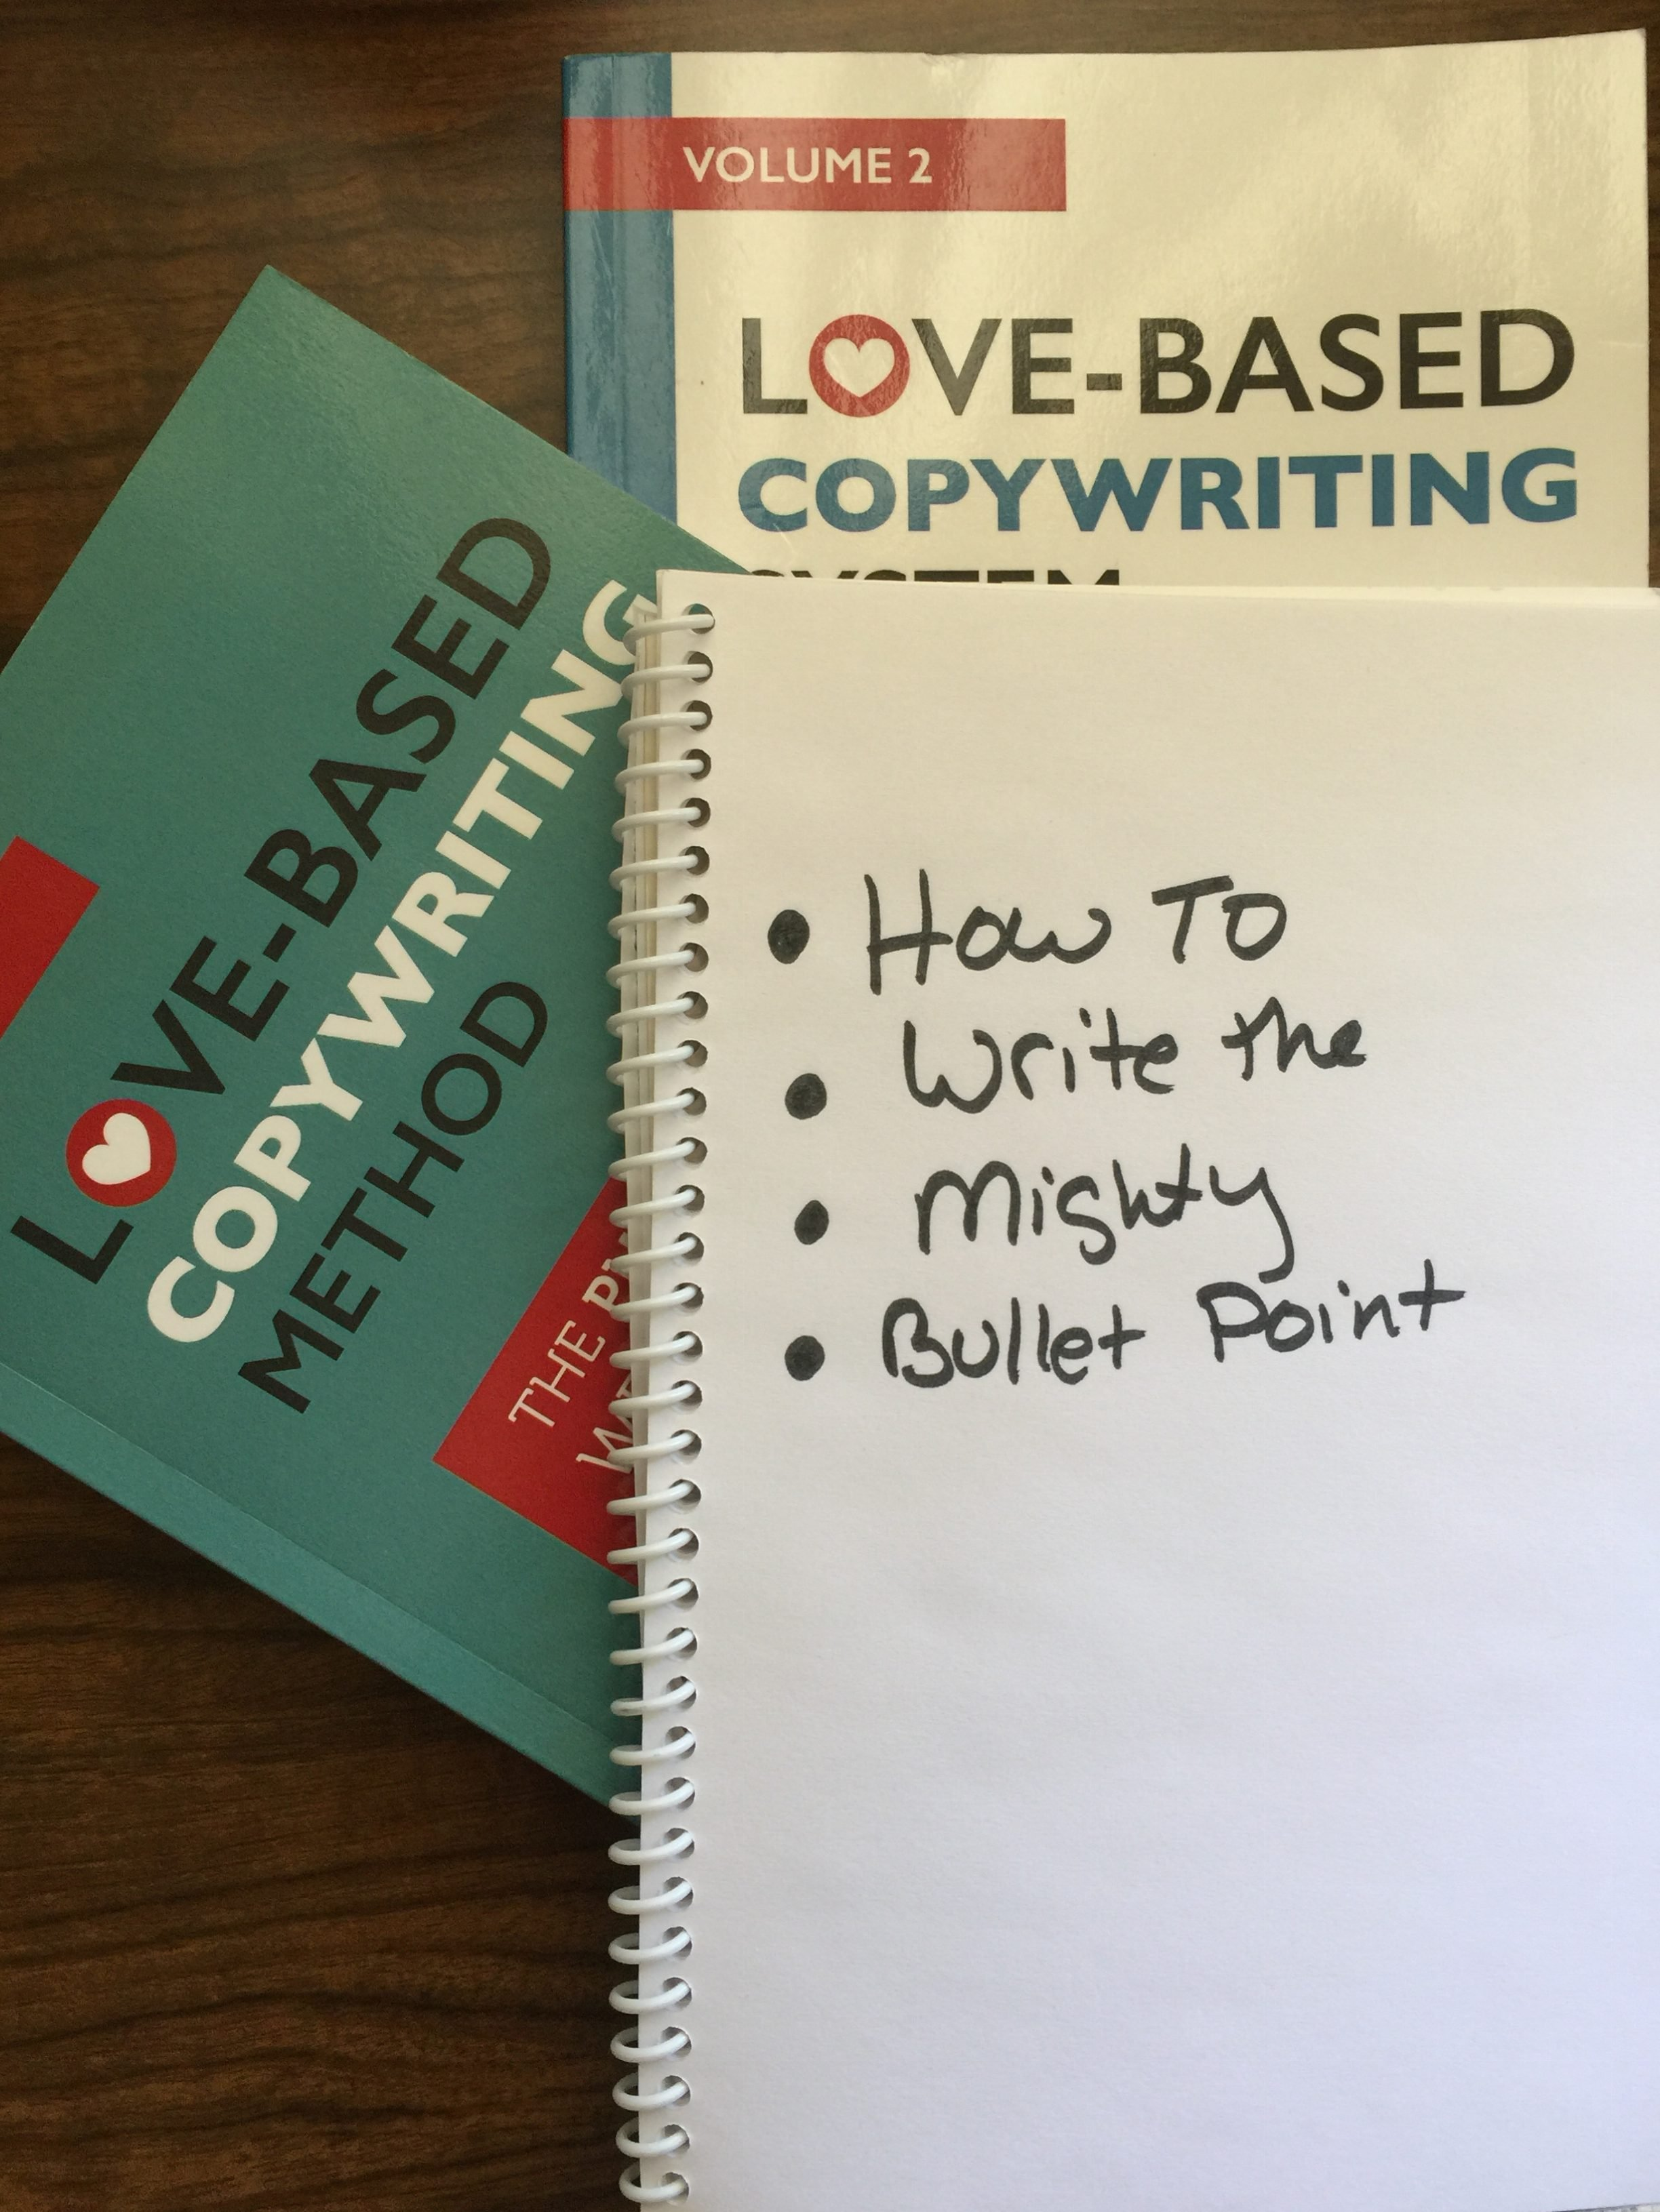 Why Most Copywriting Formulas Stink (and How to Really Write for the Web)